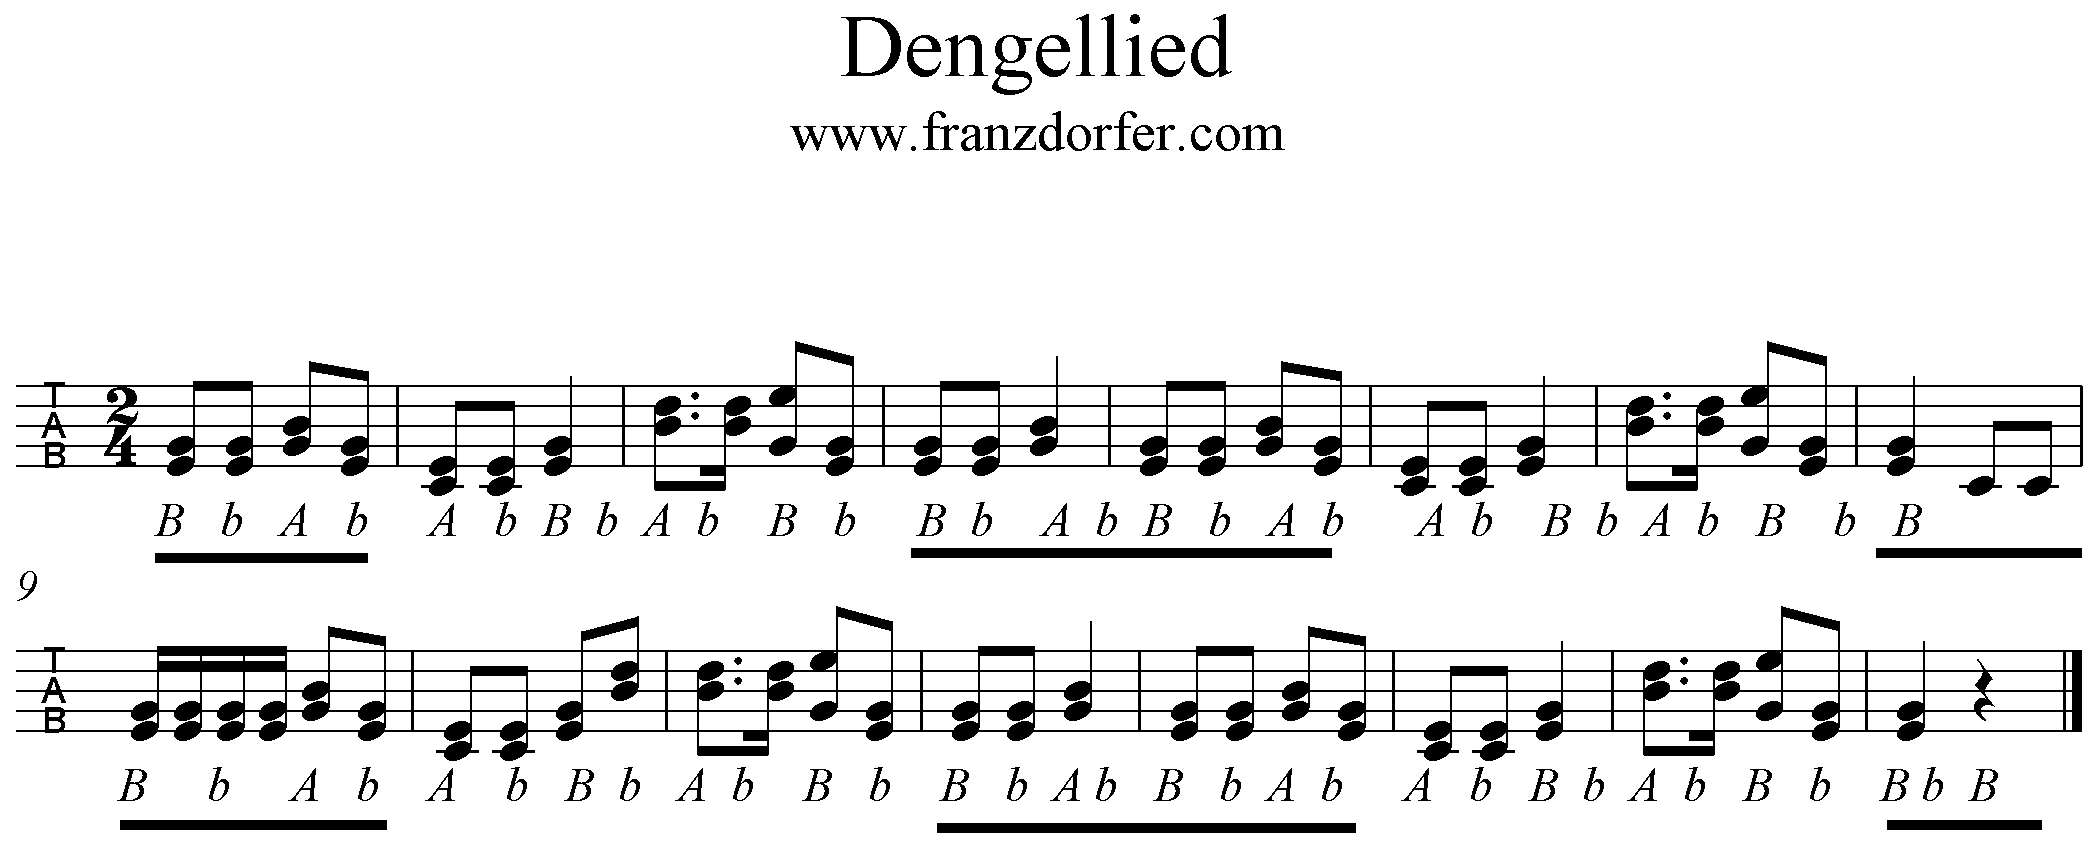 Mecklenburglied Text